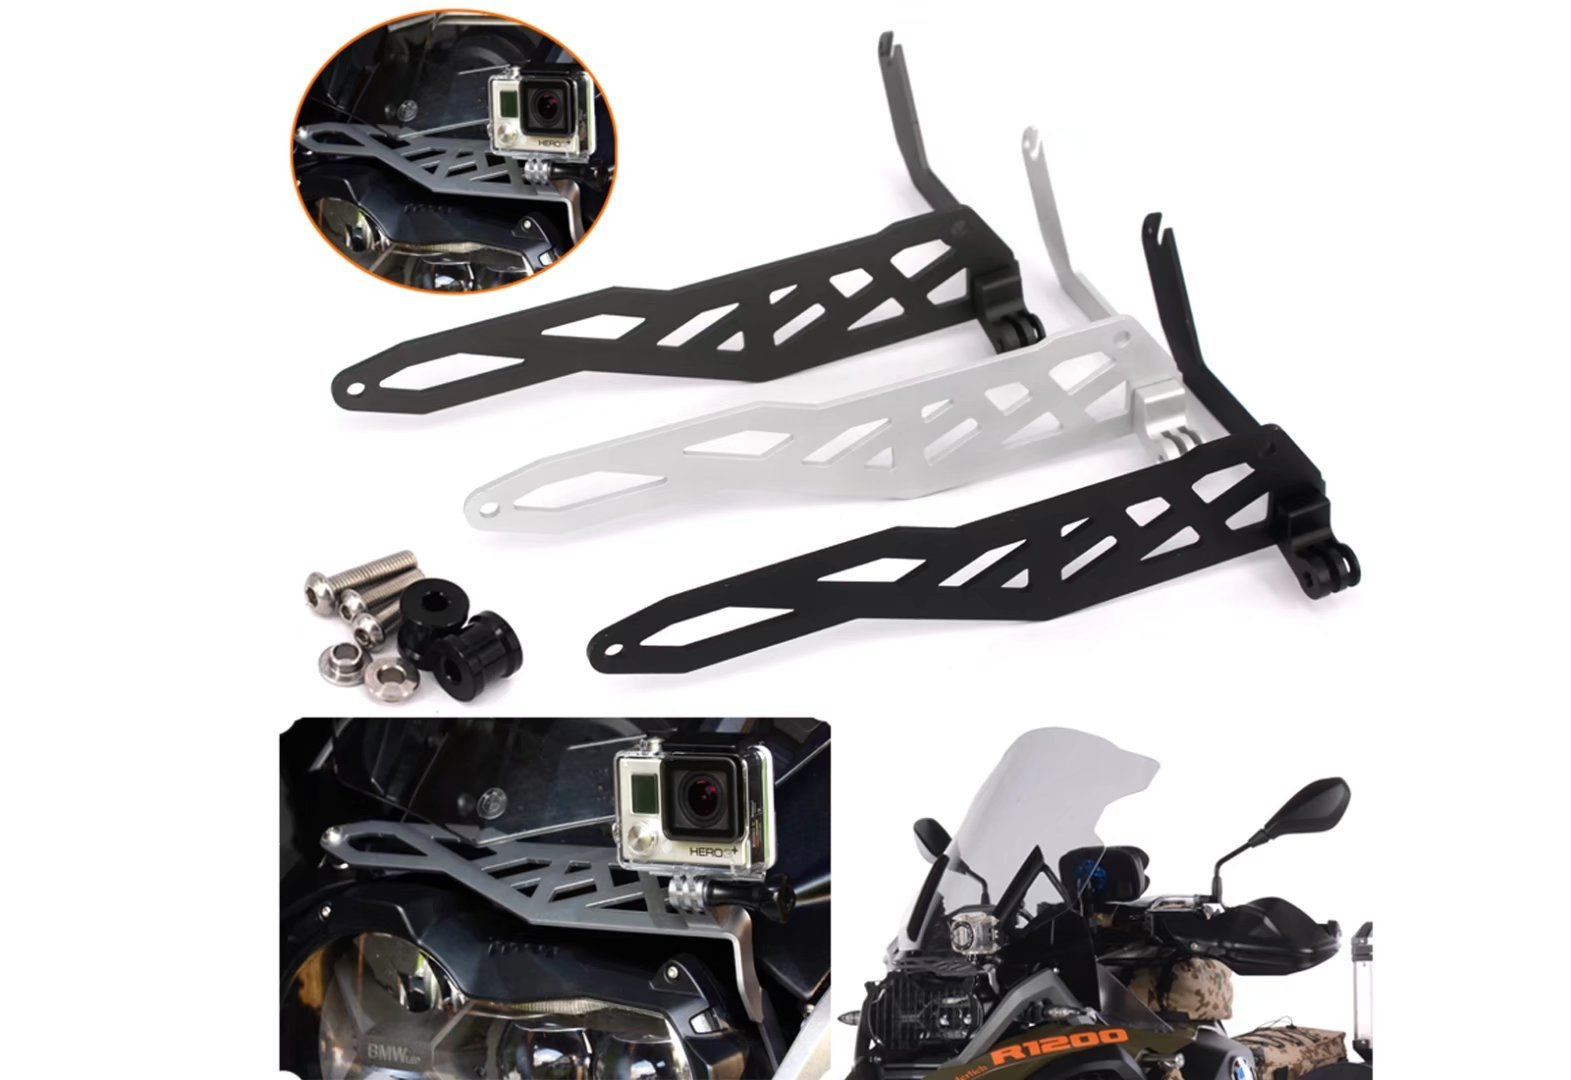 Motorcycle Sports/Camera/VCR Mount Bracket Cam Rack Indicator For BMW R 1200GS LC 2013-2016 BMW R 1200GS LC Adventure 2013-2017